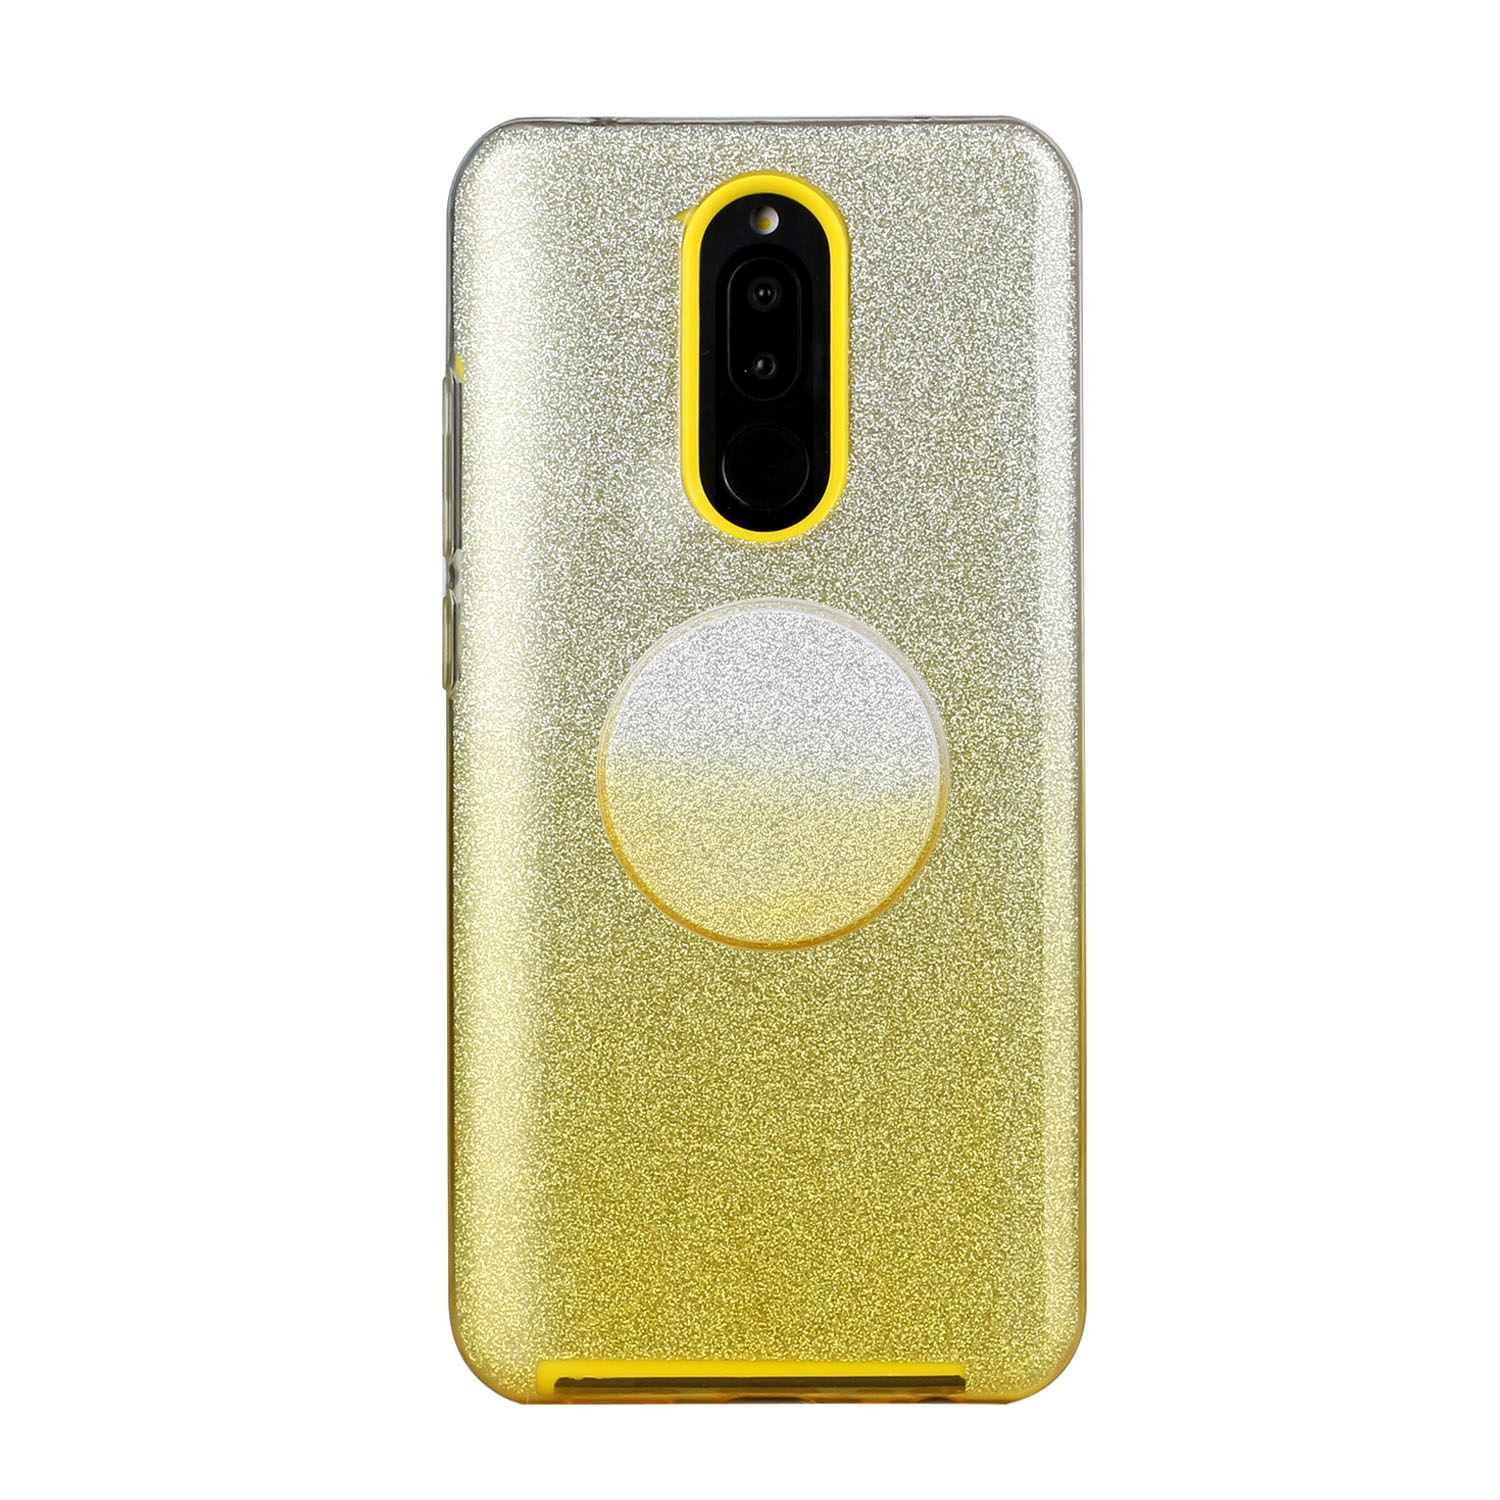 For OPPO F9/F9 Pro/A7X/F11 Pro/A8/A31 Phone Case Gradient Color Glitter Powder Phone Cover with Airbag Bracket yellow